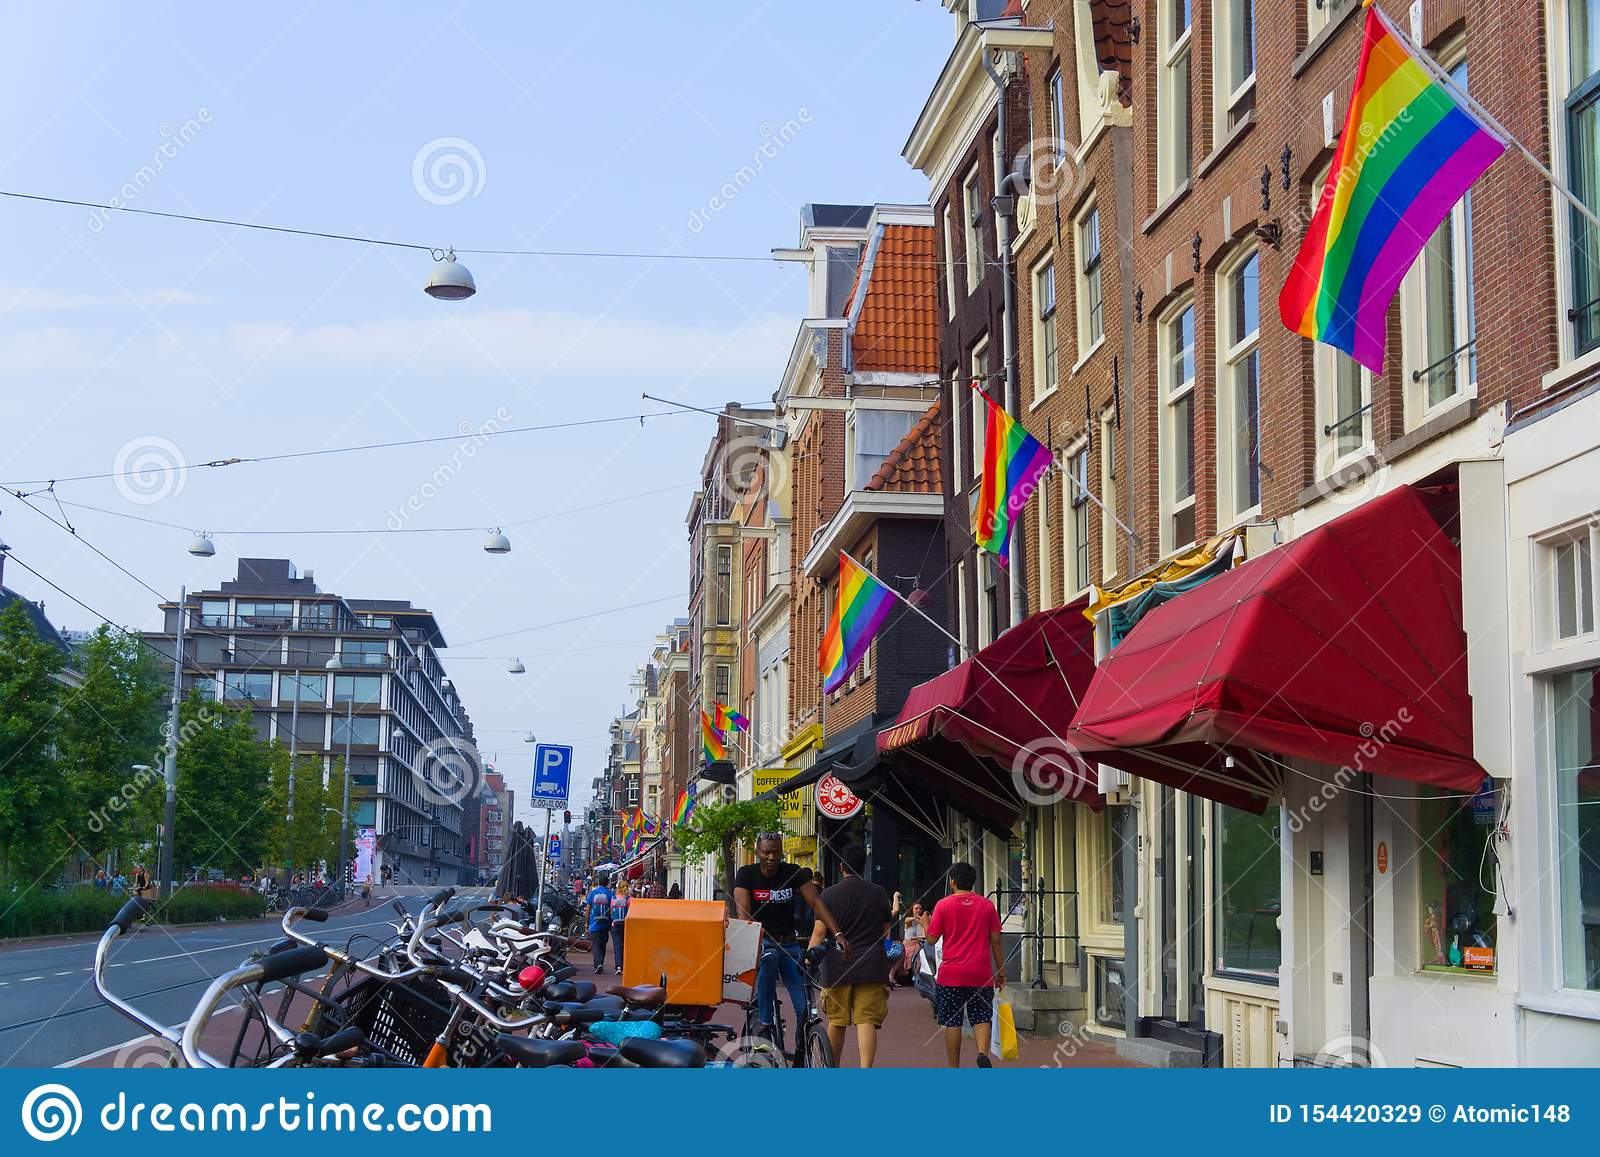 27-07-2019 amsterdam the netherlands pride parade 2019 amsterdam covered in rainbow flags